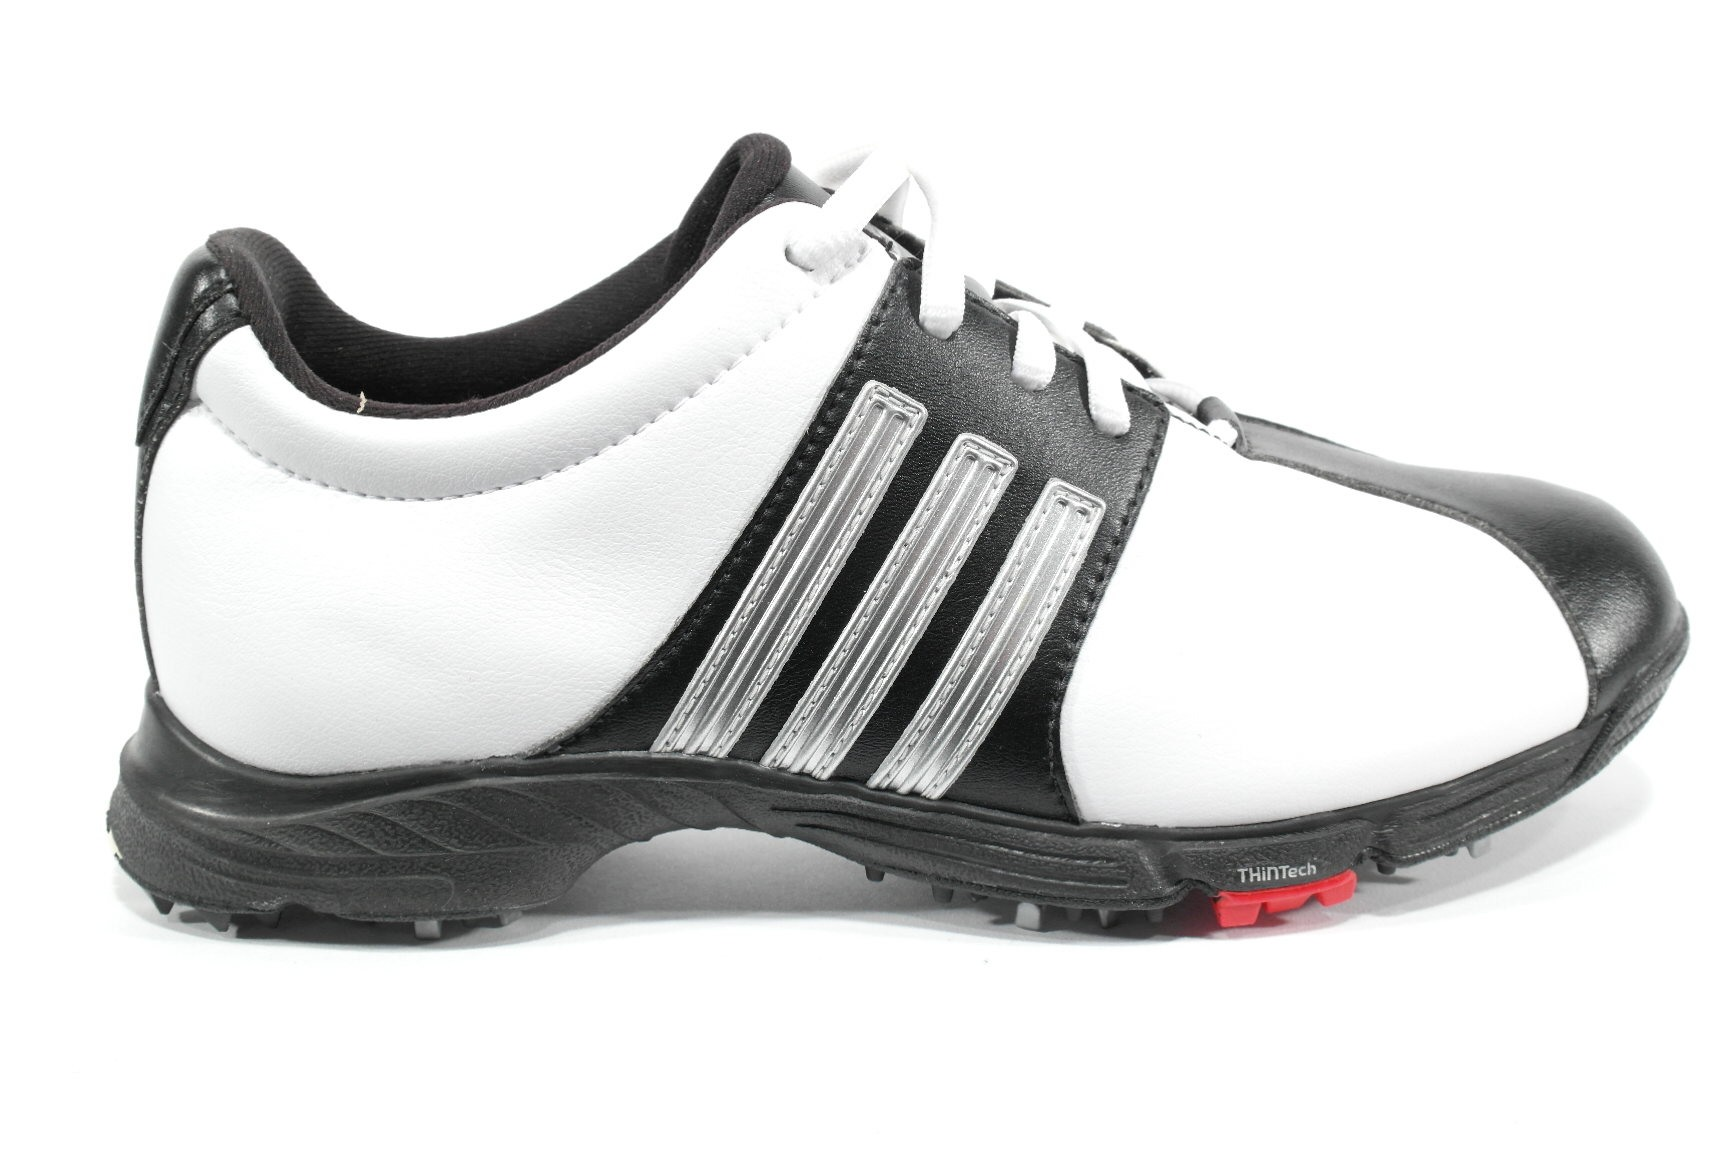 Junior golf schoen Adidas Golf was 816367